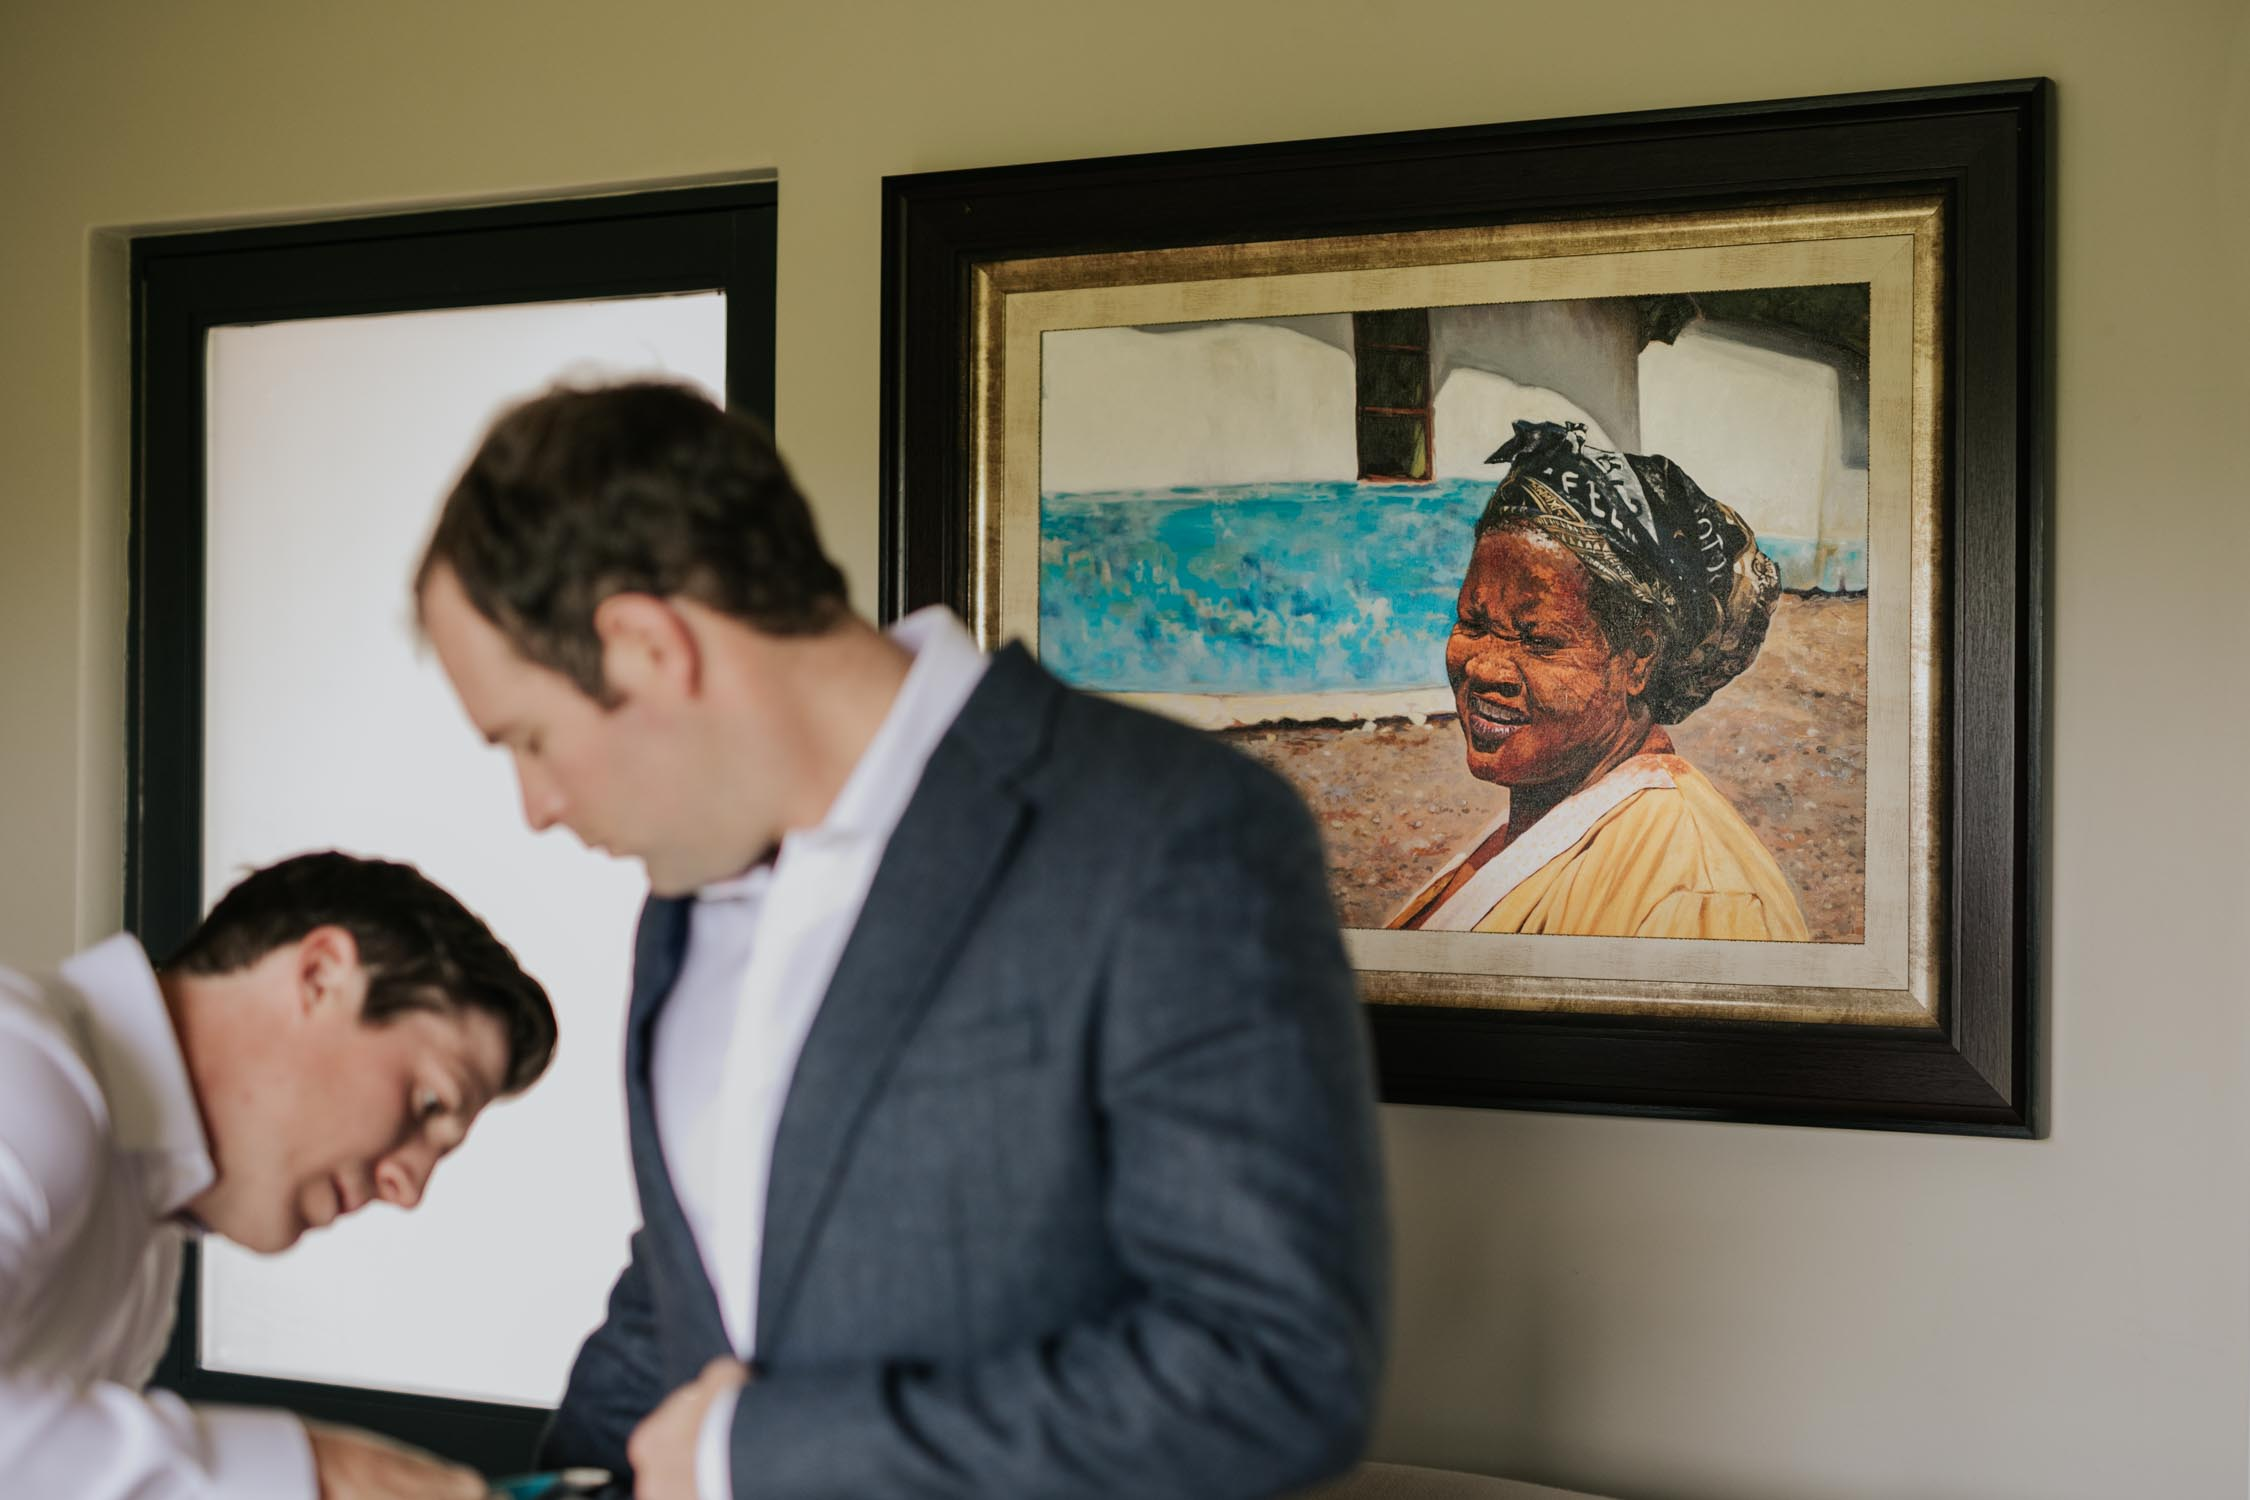 Groomsman helping groom get ready for his wedding day. Groom is wearing a white shirt and grey jacket and is standing in front of a painting of an African woman.